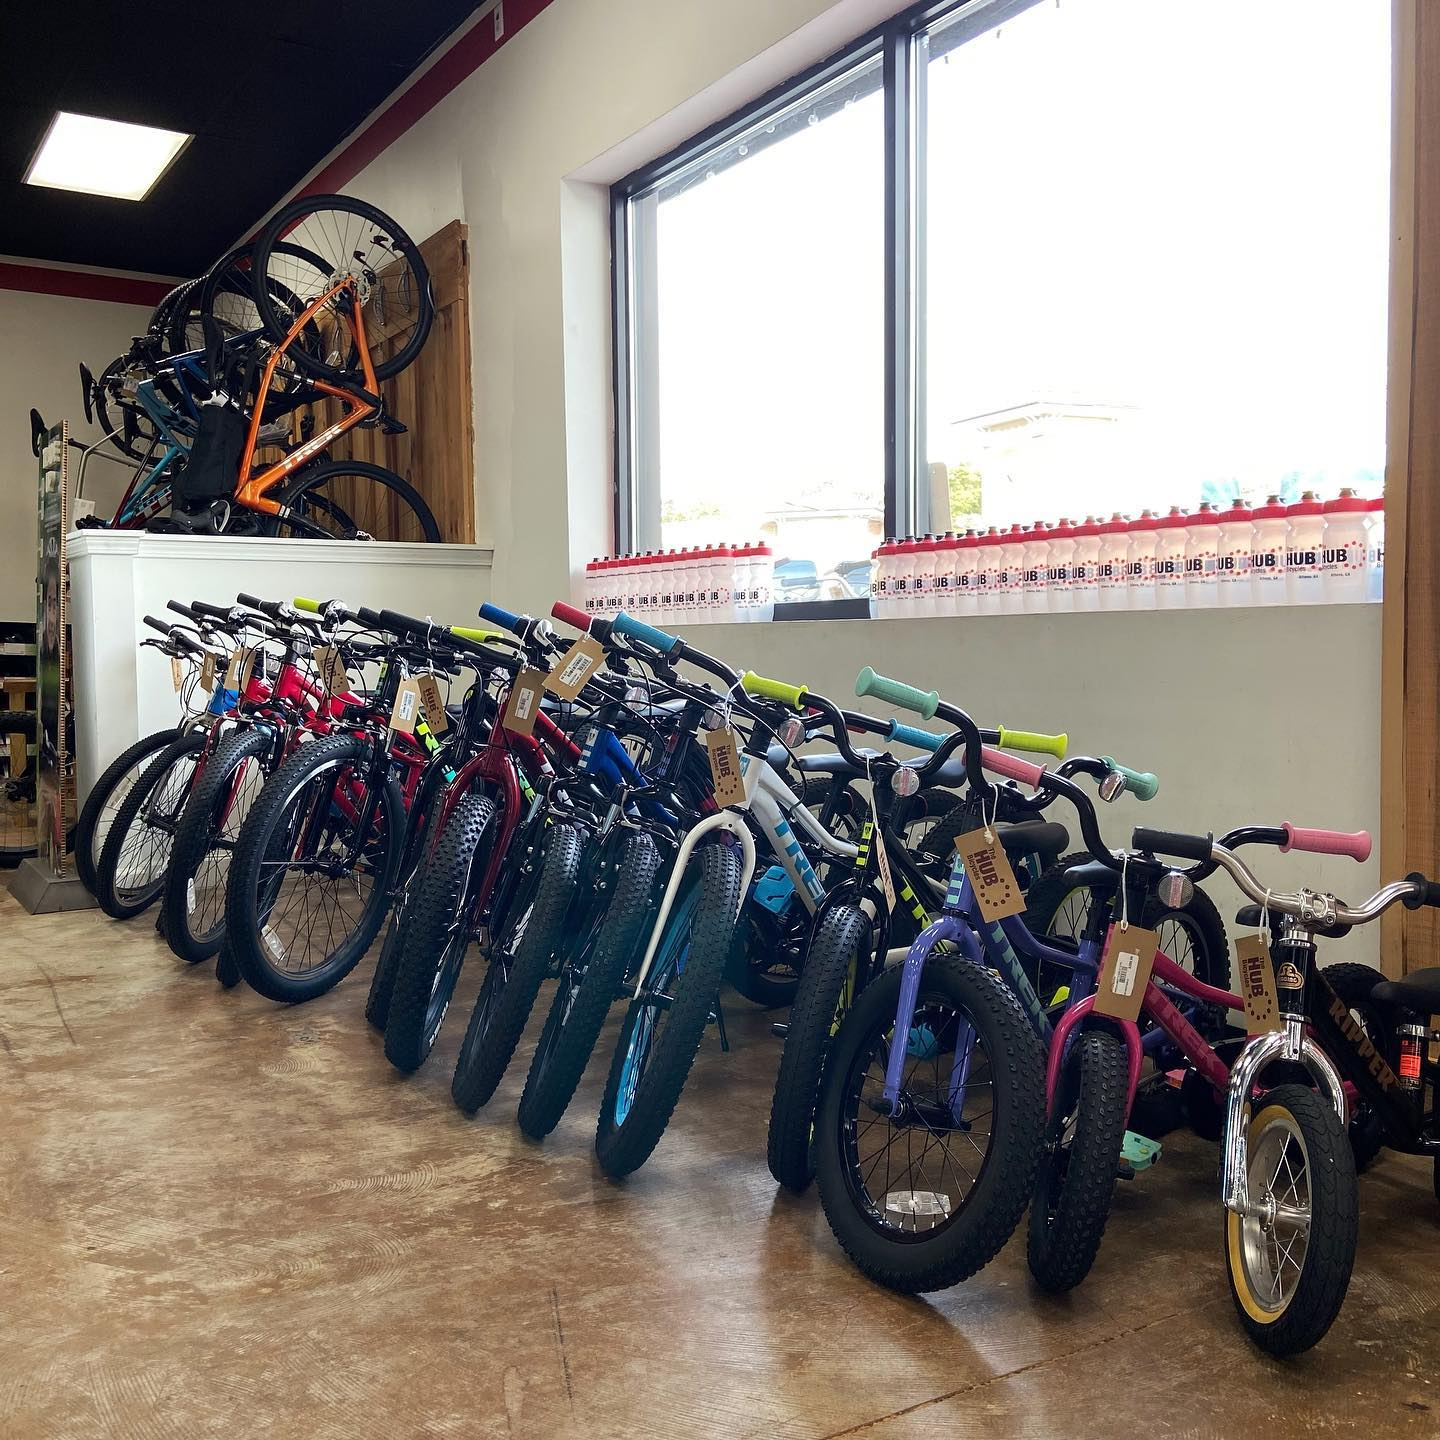 Are you thinking ahead about Christmas yet? Supply chain issues and all.. we have tons of kids bikes because we planned ahead. Come see us. . #planahead #christmasiscoming  #ridebikeshavefun . . . #gobybike #kidsbikes #trek #christmas #hubbikes